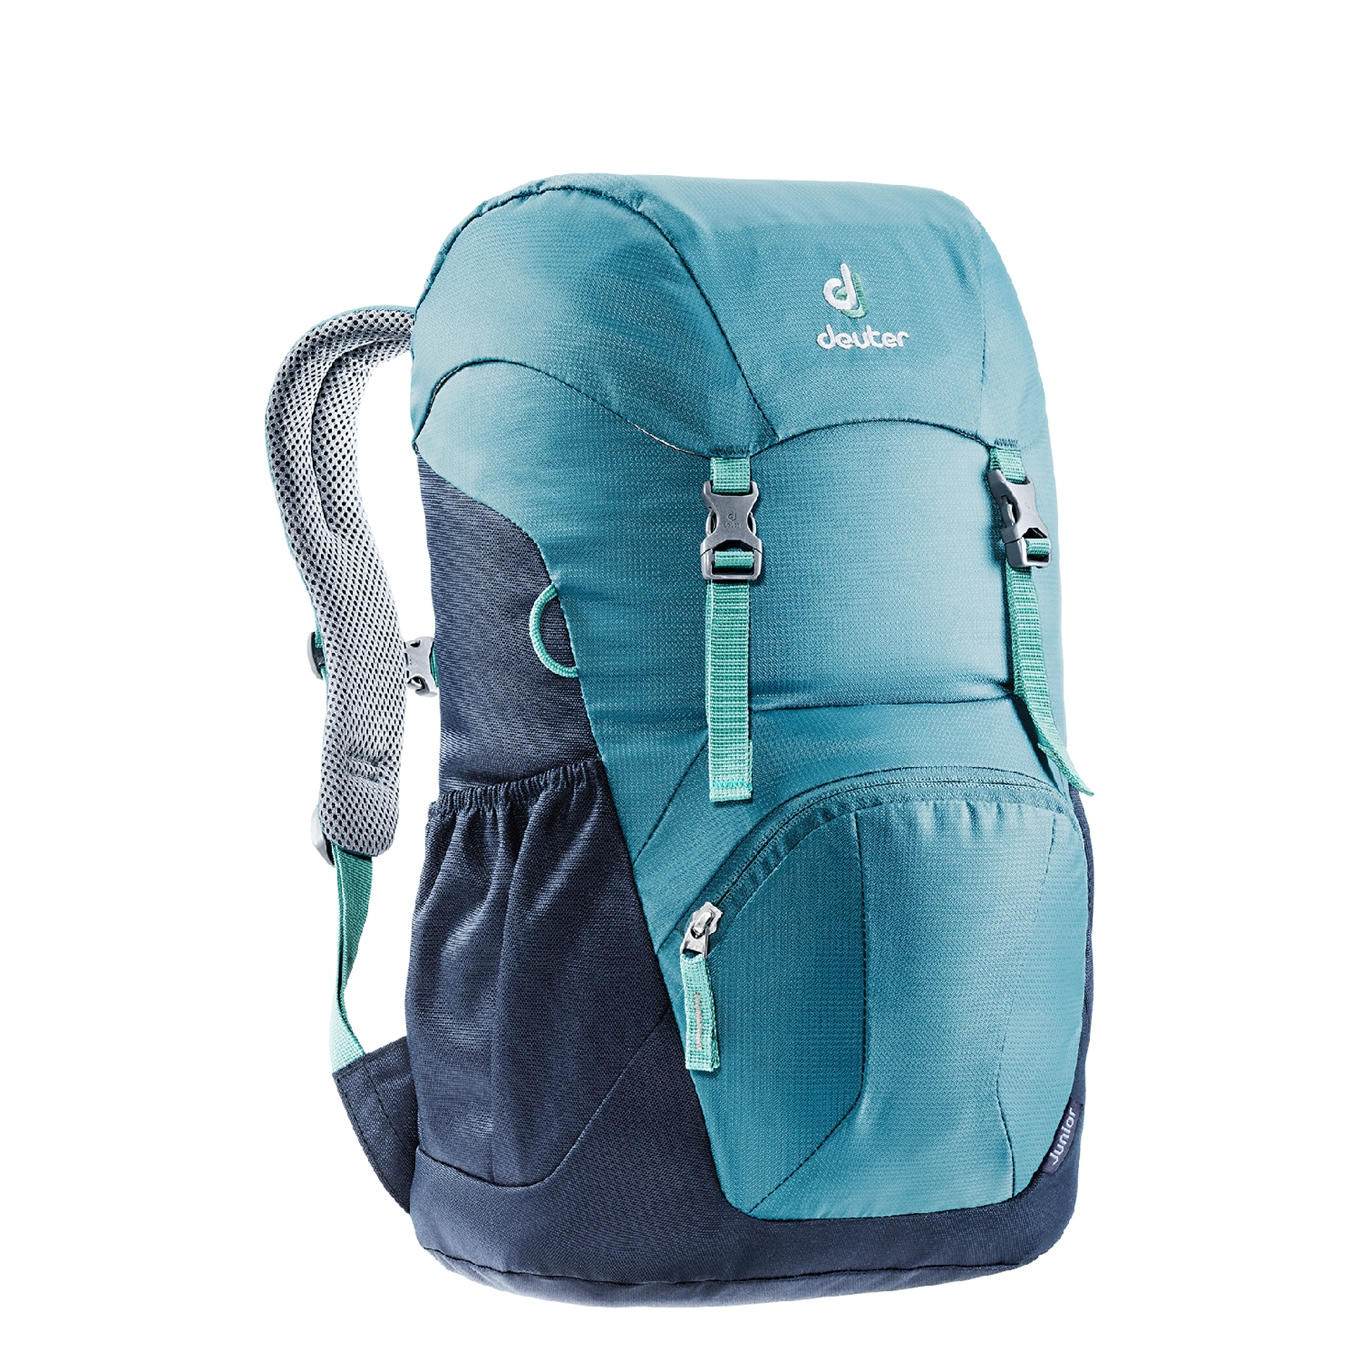 Deuter Junior Kids Backpack denim/navy Kindertas